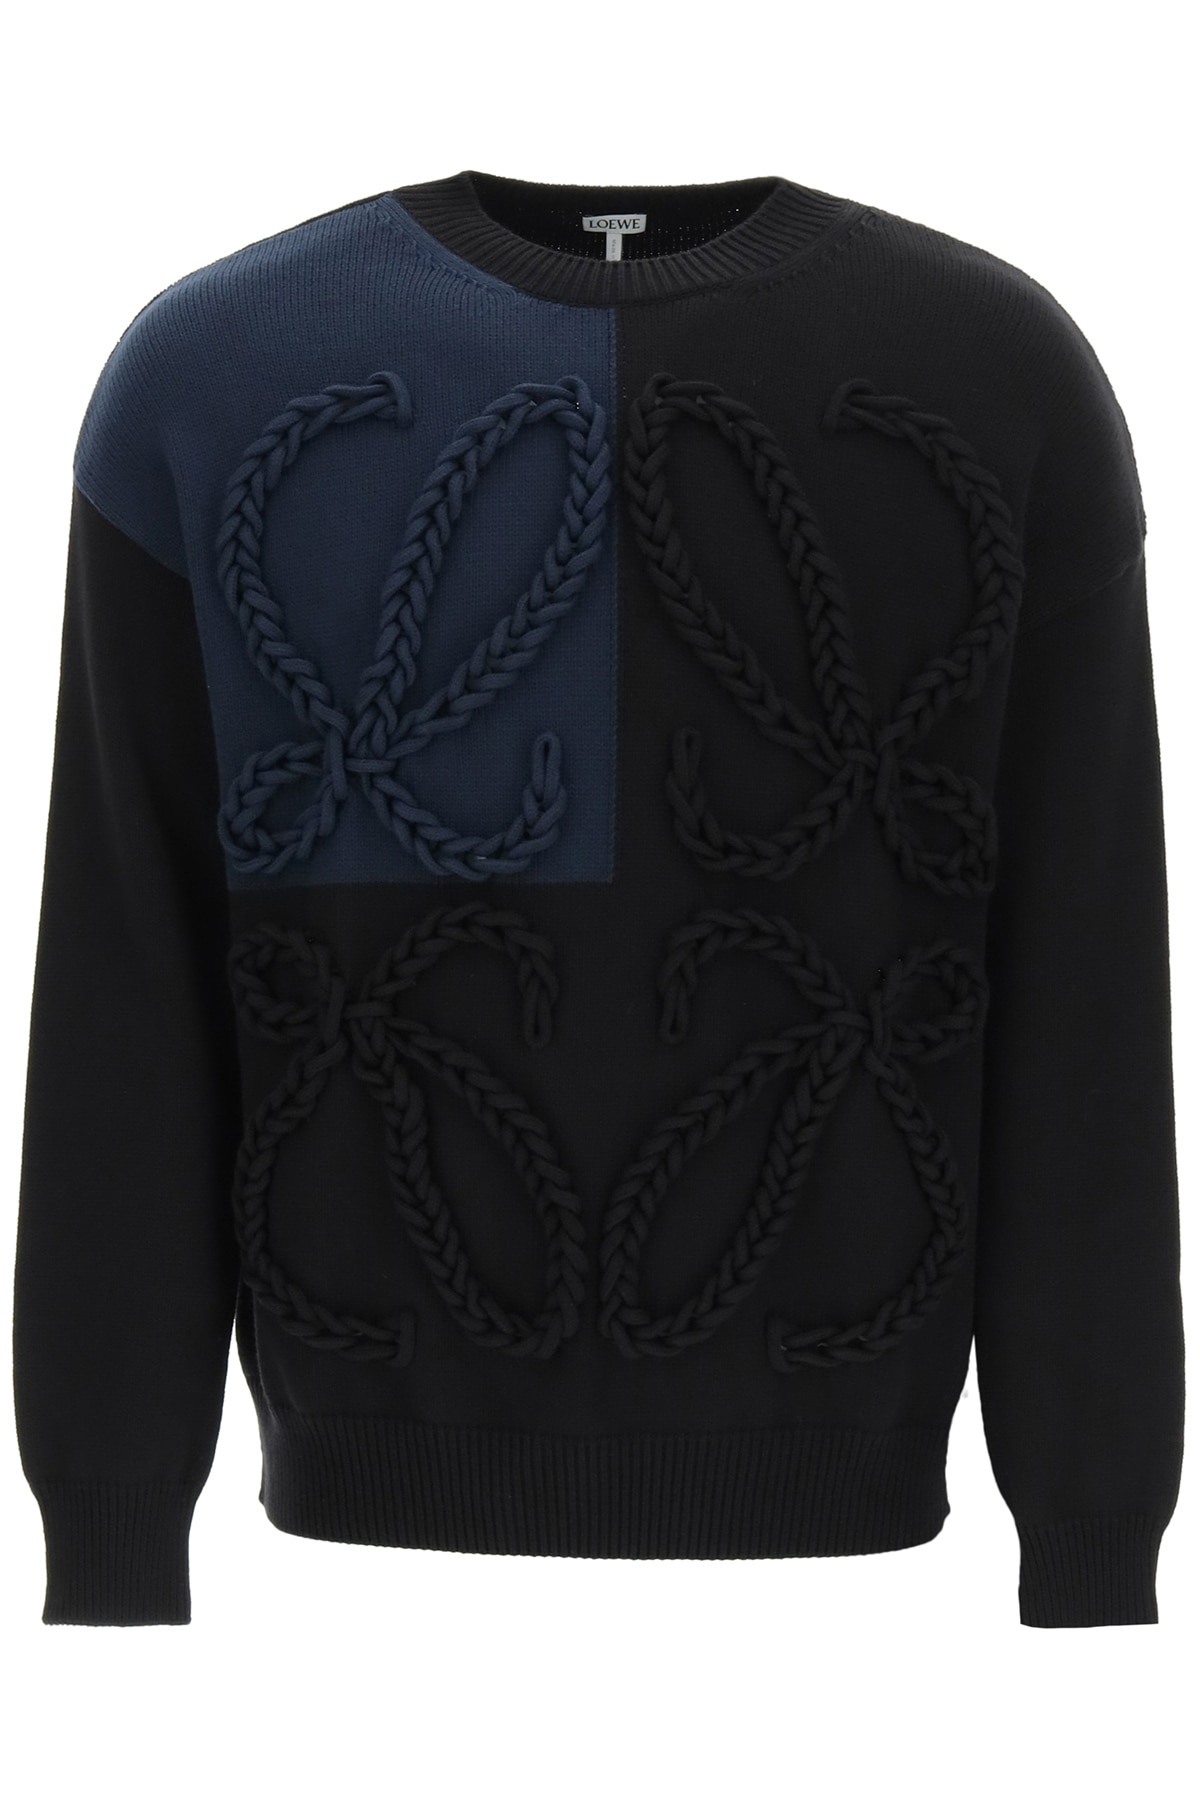 Loewe Anagram Embroidered Sweater S Blue, Black Cotton